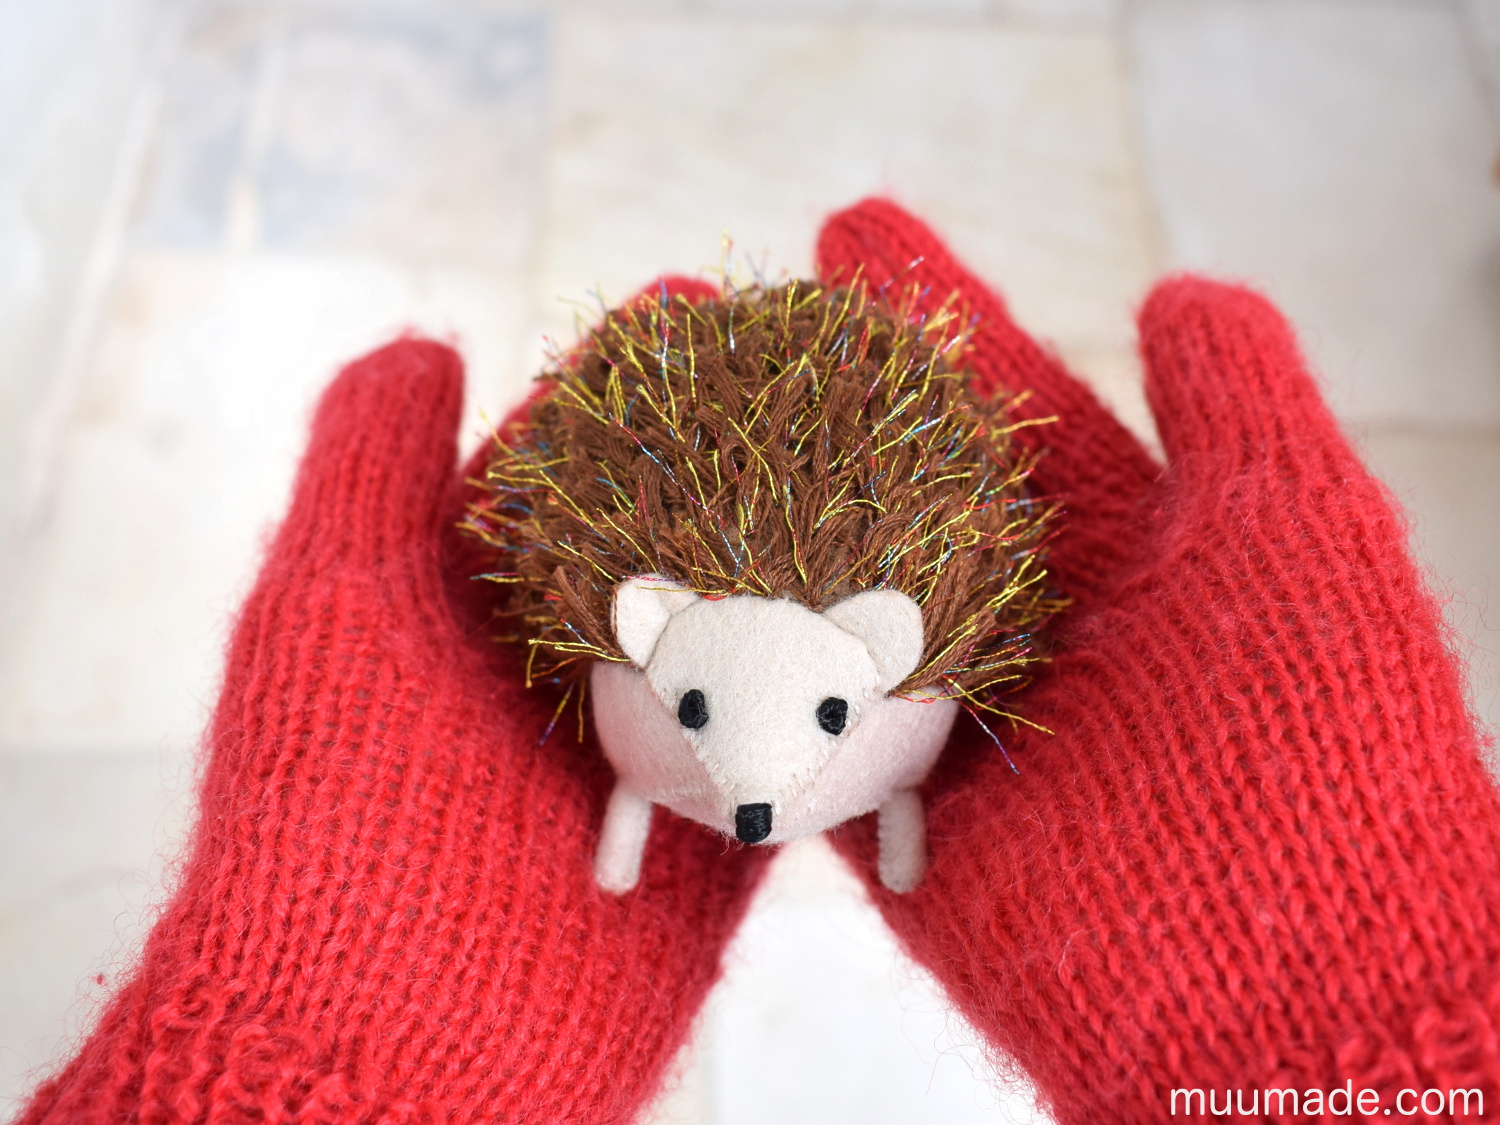 Little Felt Hedgehog sewing pattern from Muumade.com